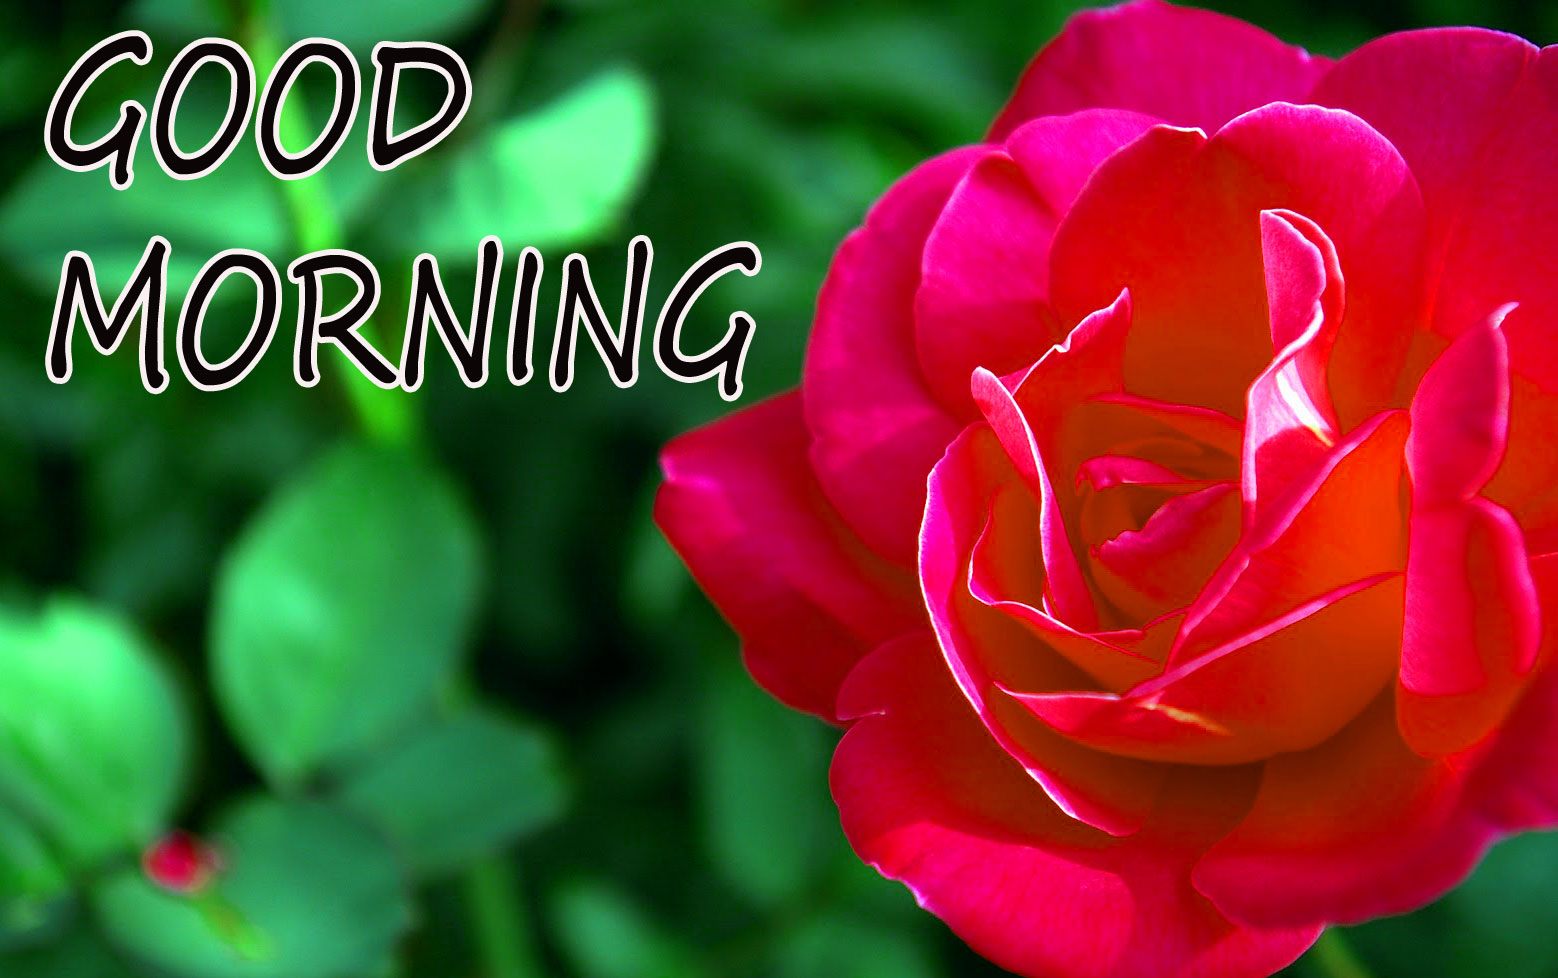 GOOD MORNING IMAGE WITH BEAUTIFUL FLOWERS NATURE WALLPAPER DOWNLOAD